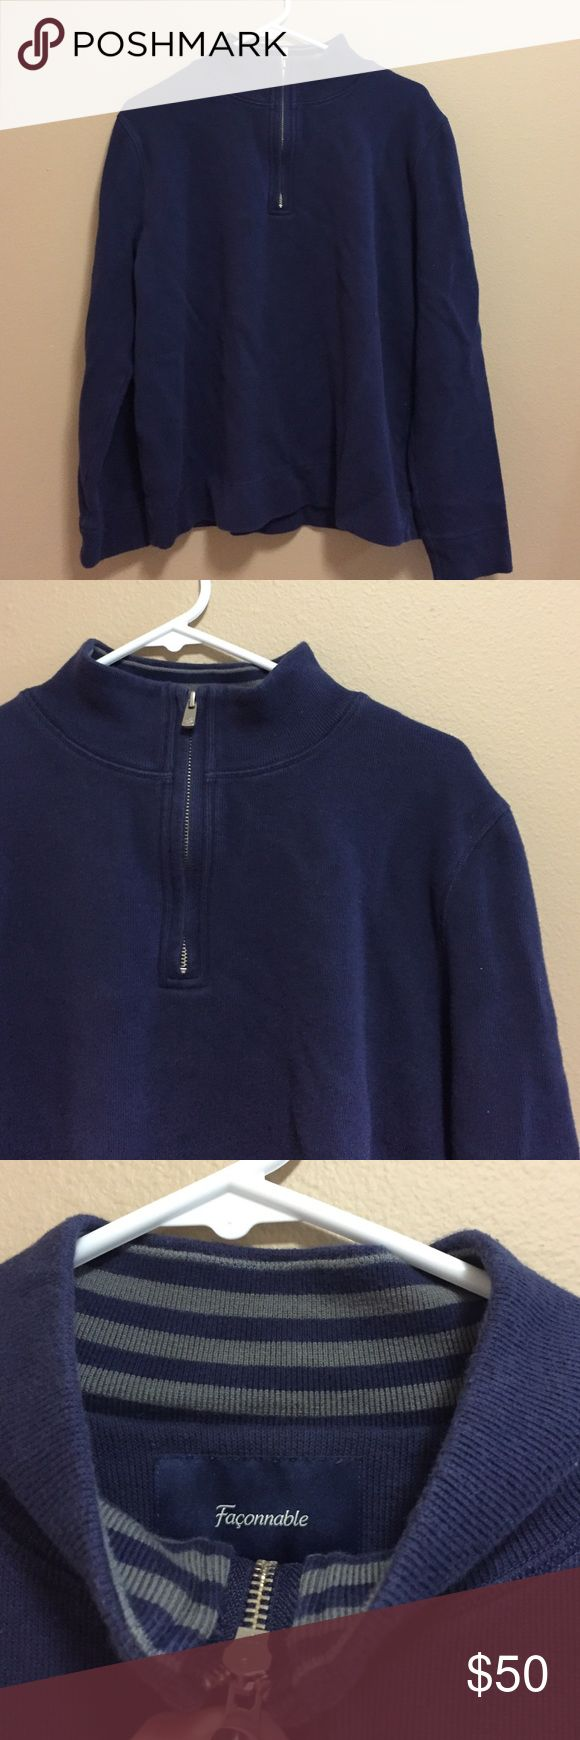 Faconnable Men's sweater Super comfortable Faconnable sweater with a zipper. 100% cotton. Never worn - Navy blue Façonnable Sweaters